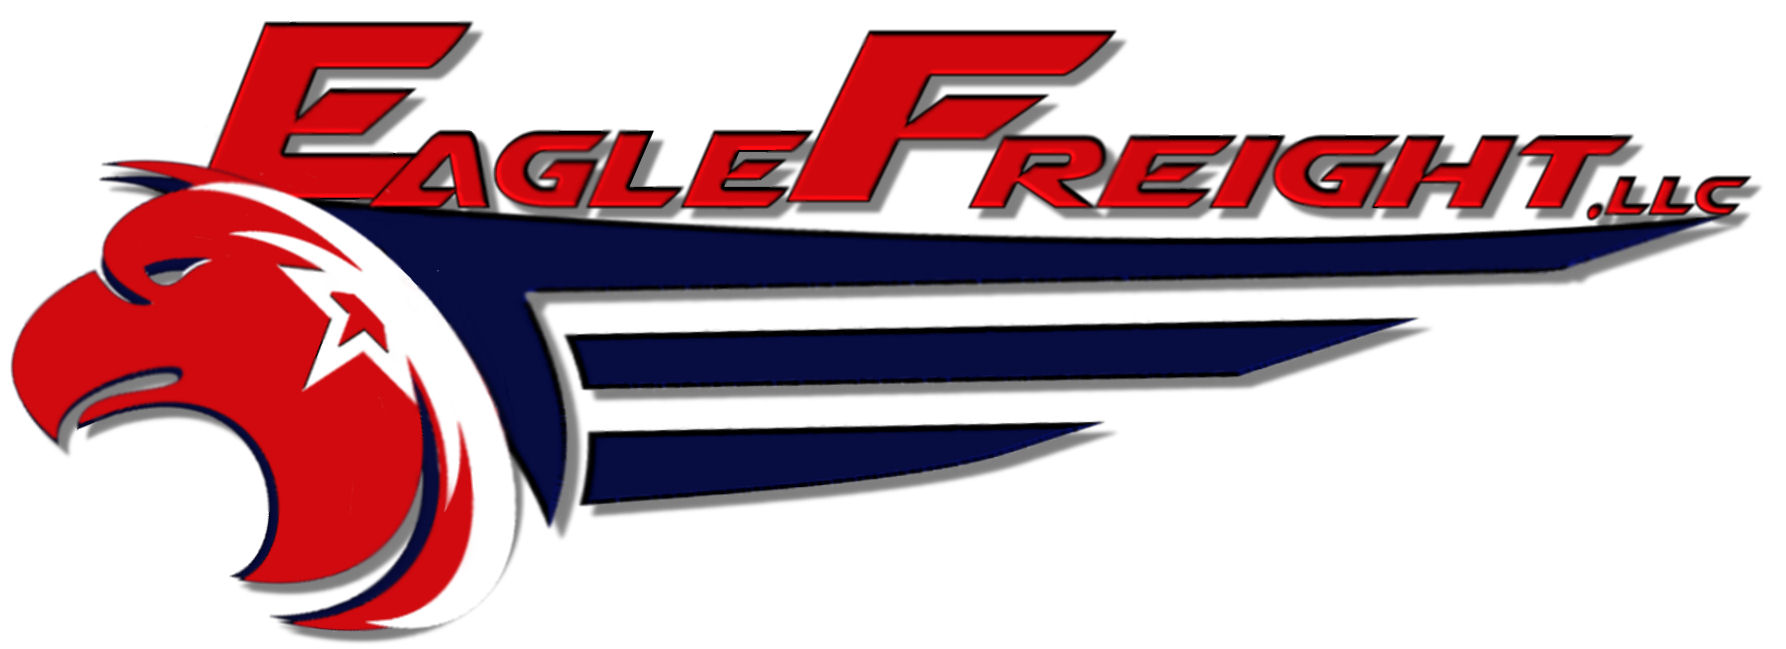 Eagle Freight, LLC